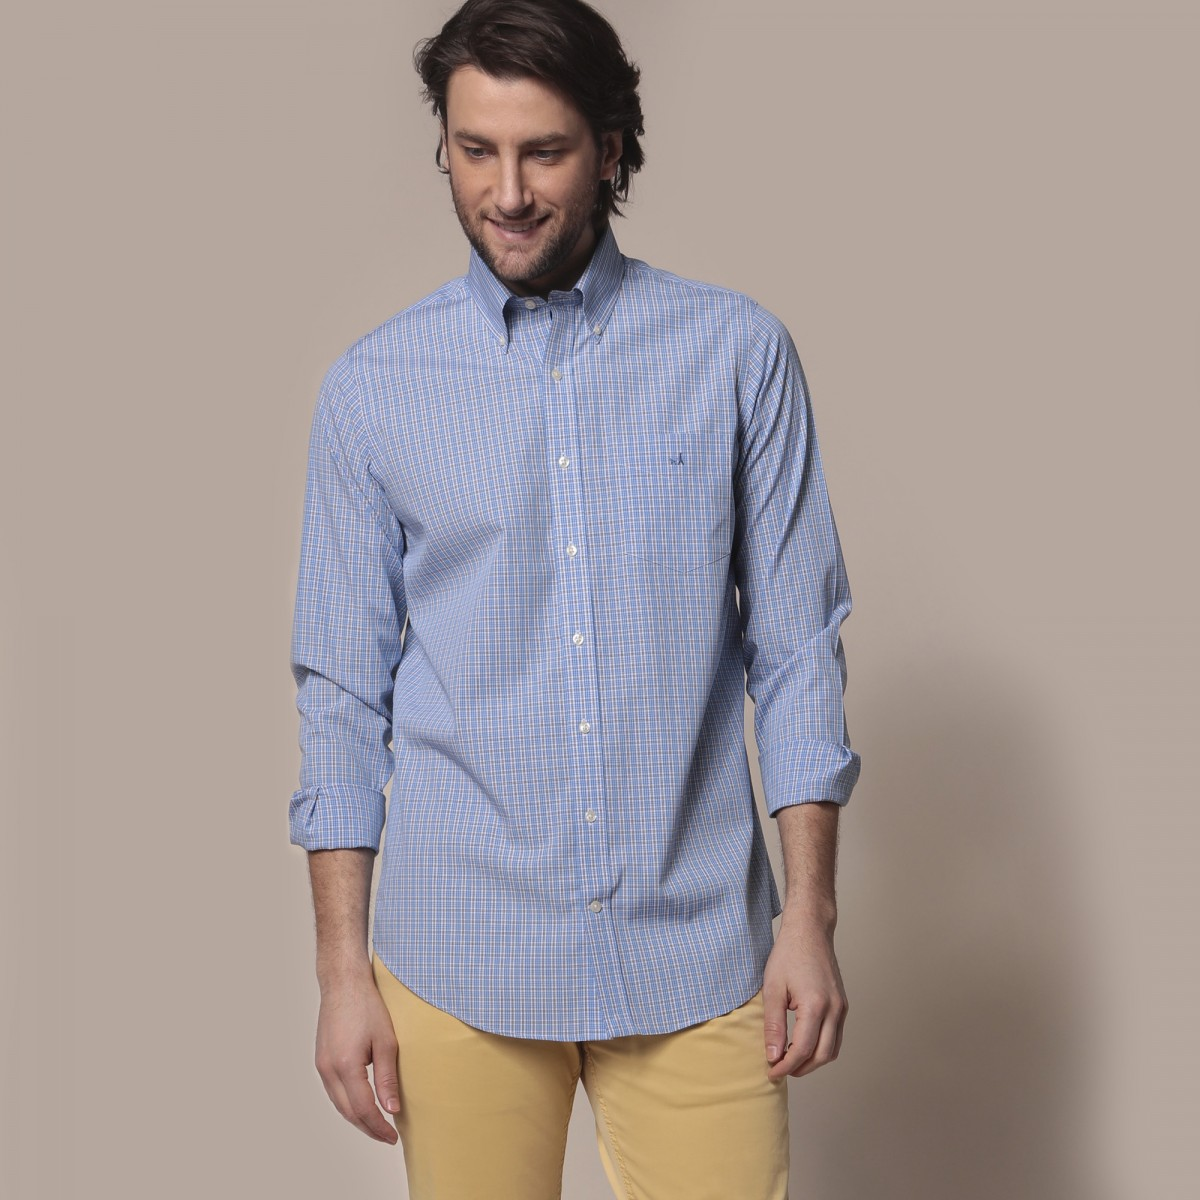 Camisa Vestir Button Down Calce Slim Non Iron Comfort Stretch A Cuadros